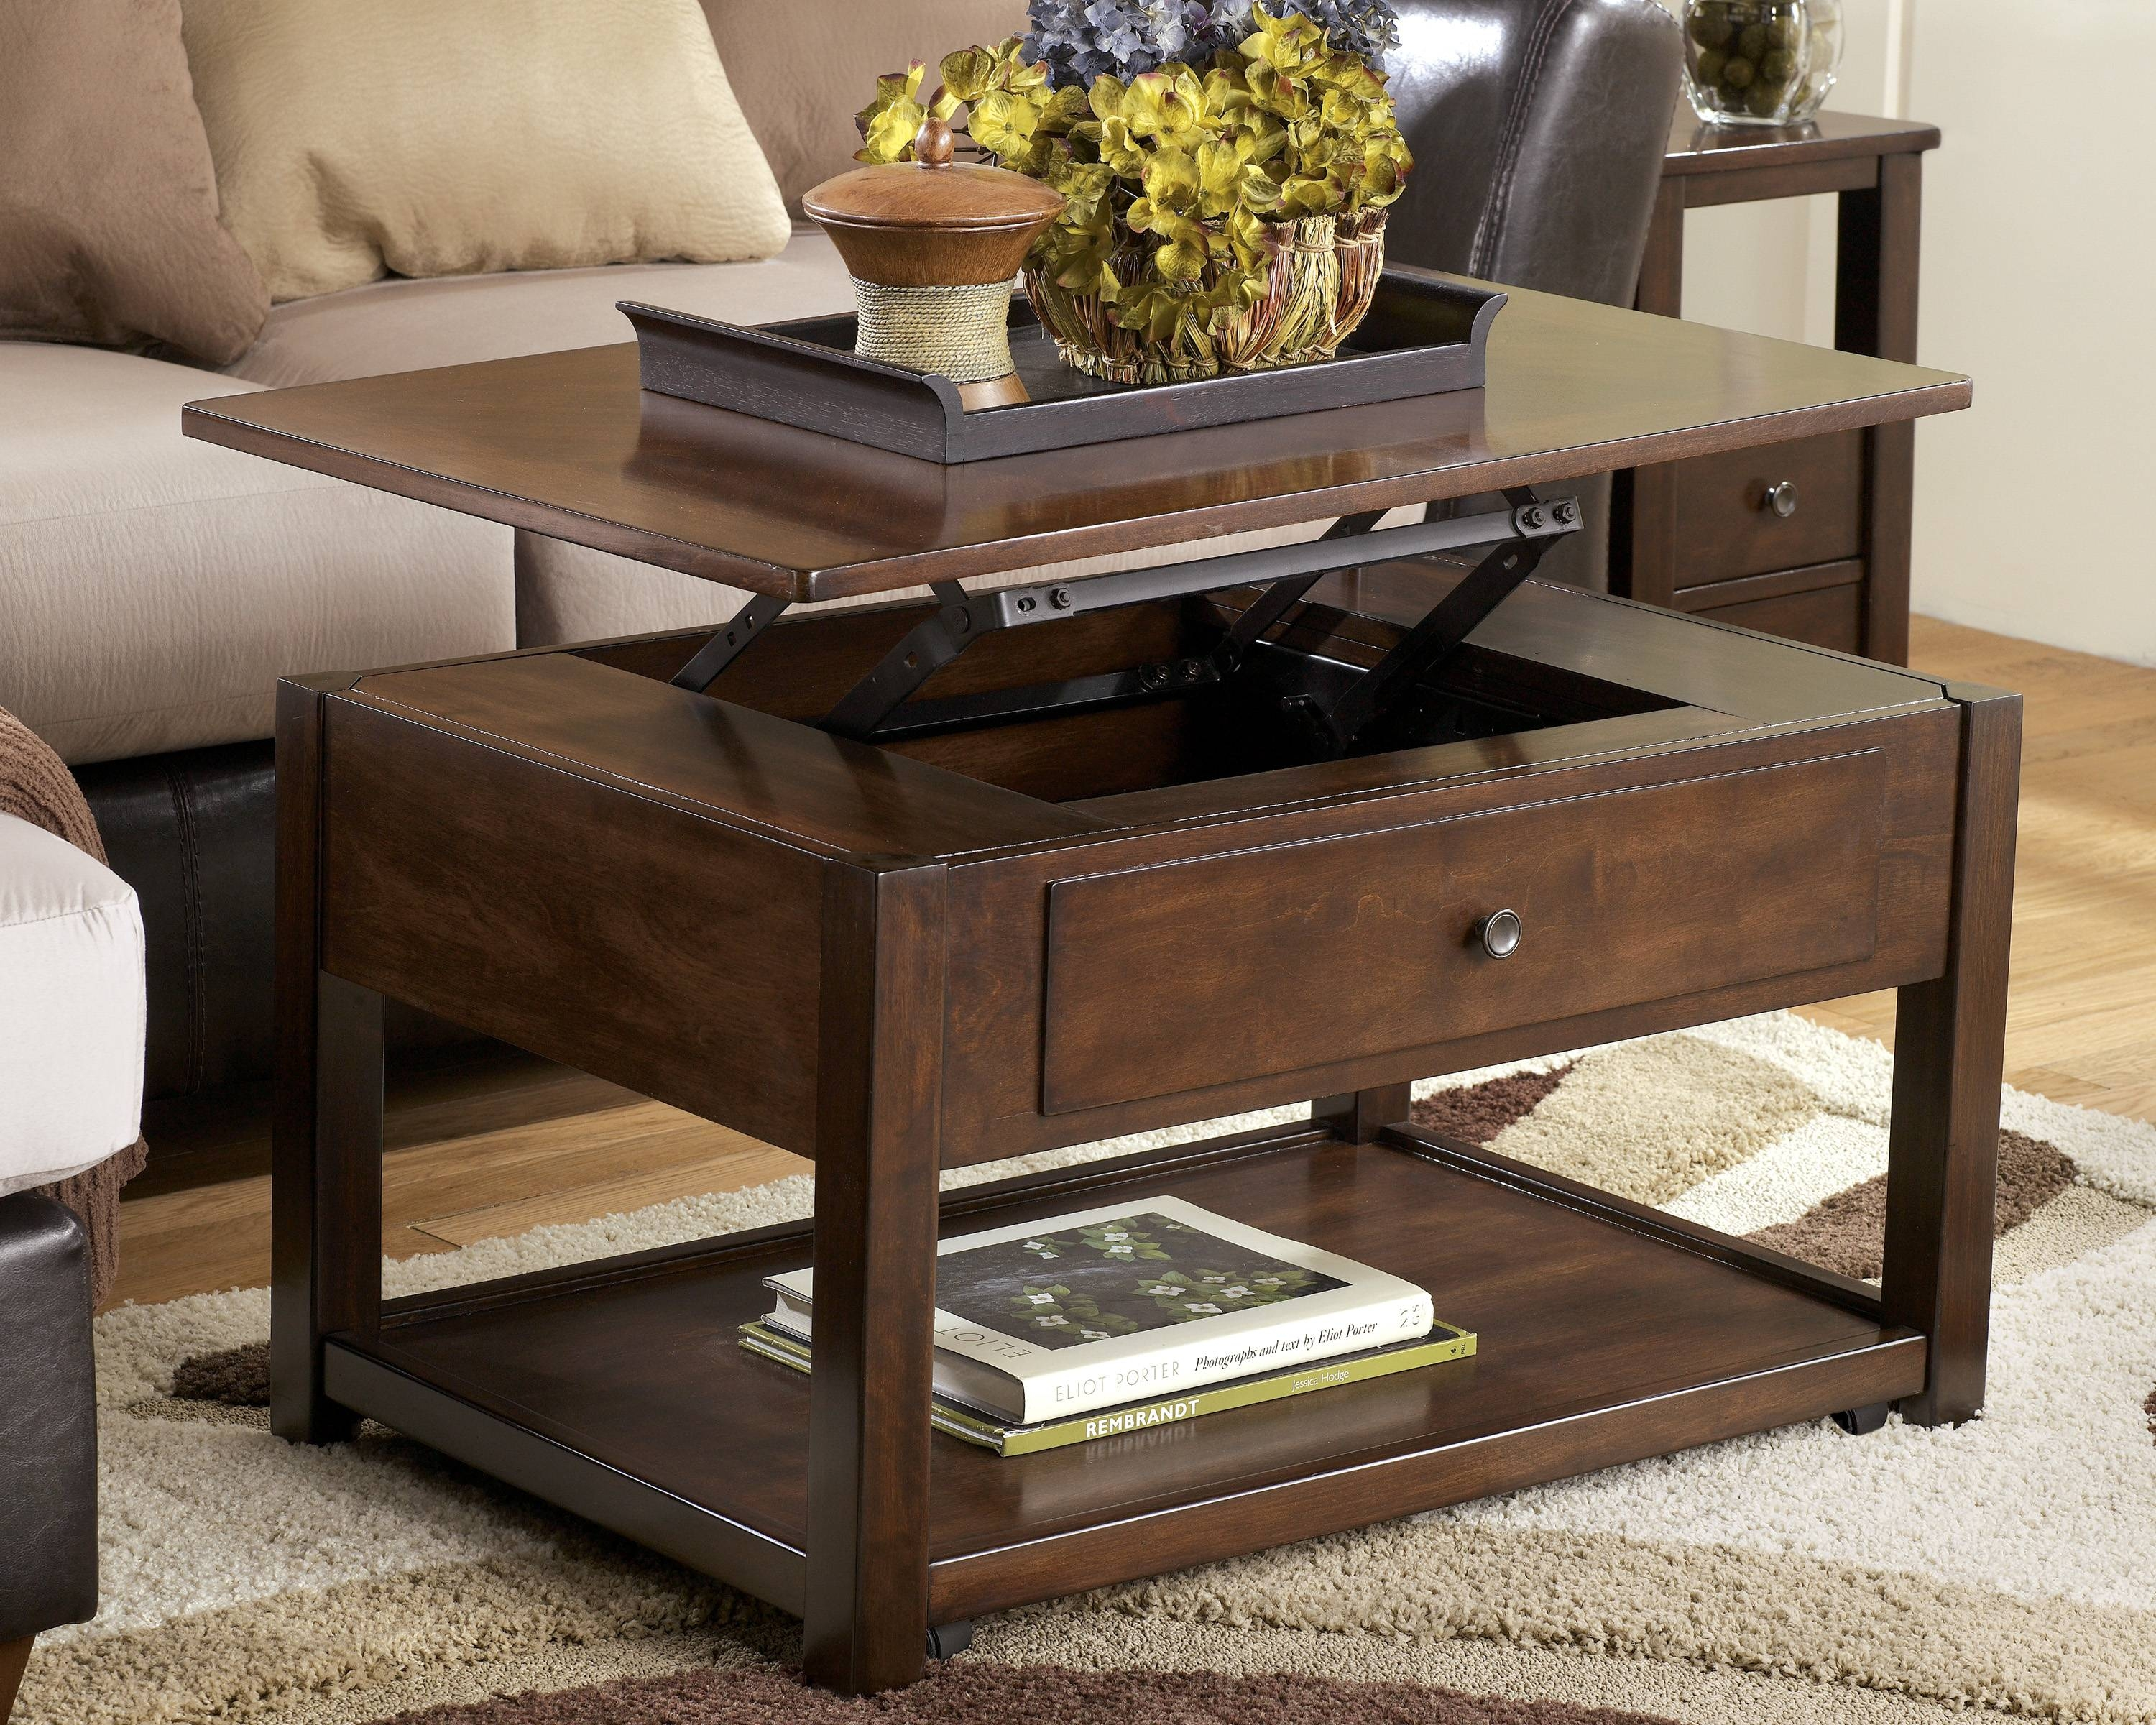 Lift Top Coffee Tables Regarding Coffee Tables With Lift Up Top (View 20 of 30)